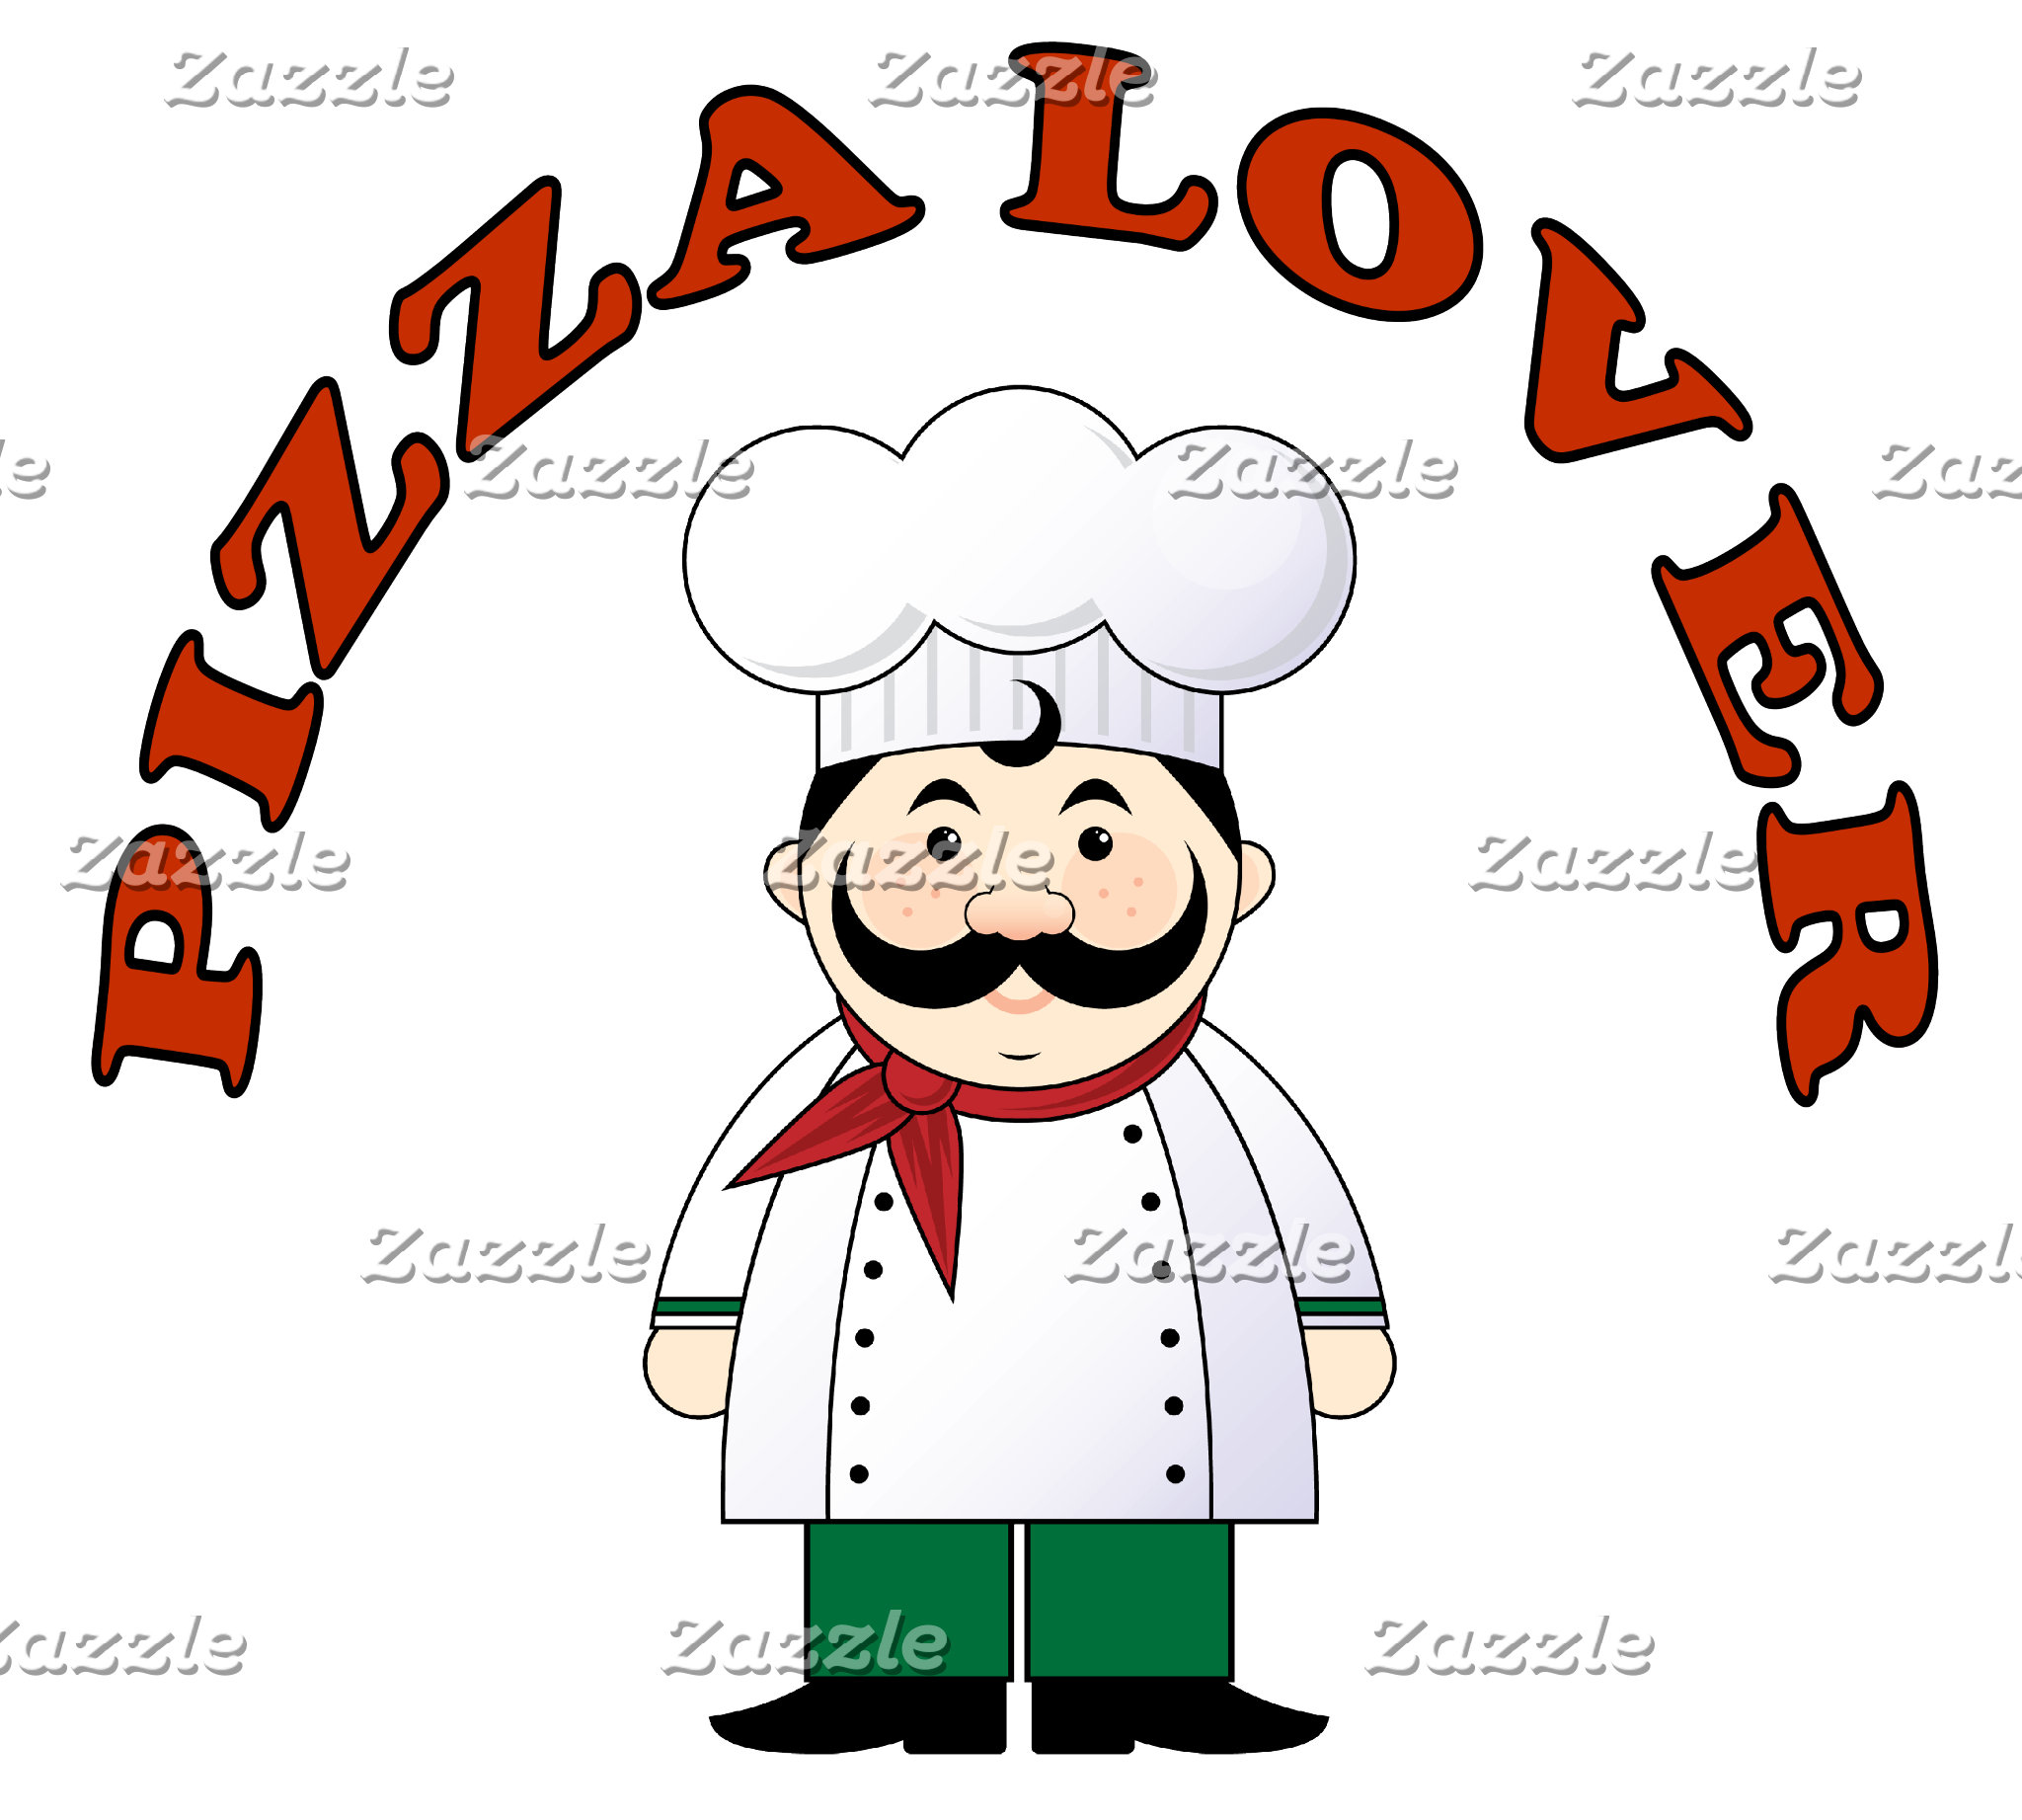 Chef - Pizza